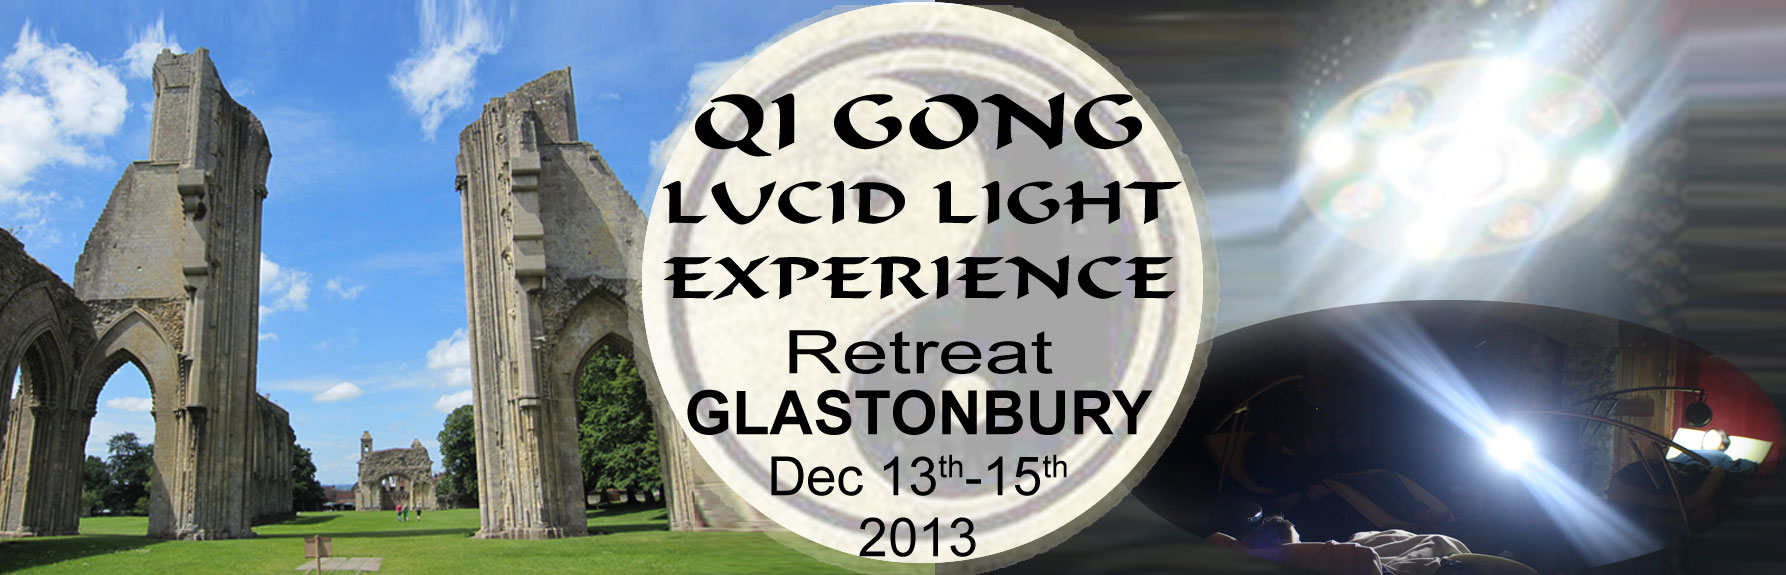 GLASTONBURY QI GONG & LUCID LIGHT EXPERIENCE RETREAT 13th - 15th December 2013